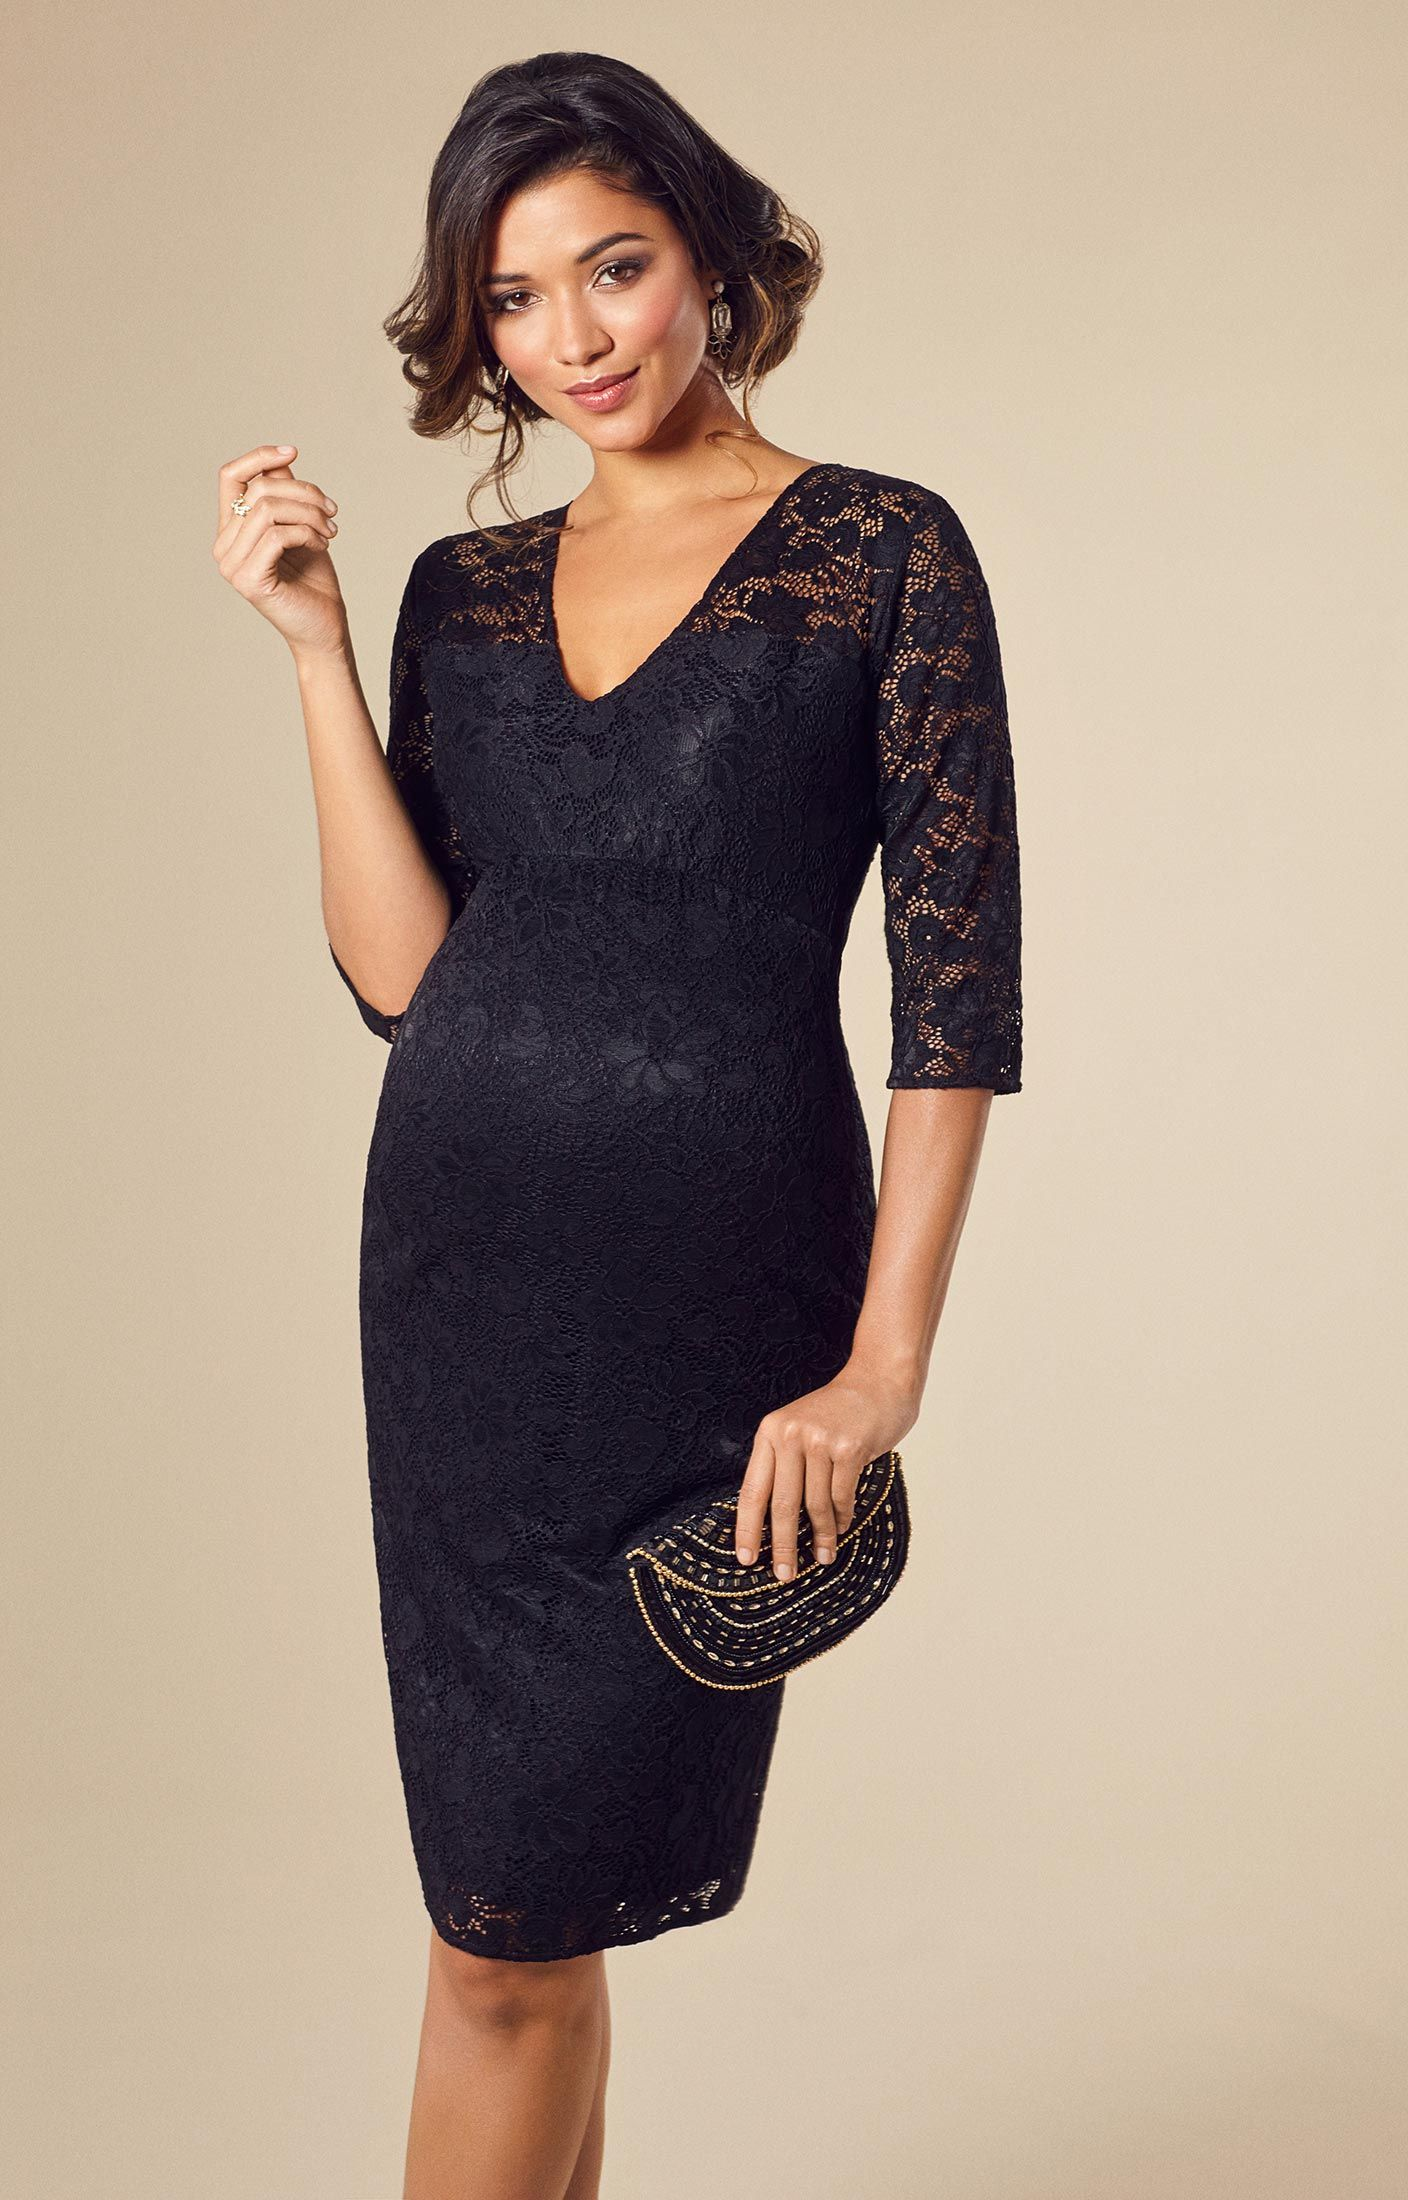 274bdebd6cd This year s ultimate maternity LBD! Ideal for a corporate event or social  occasion